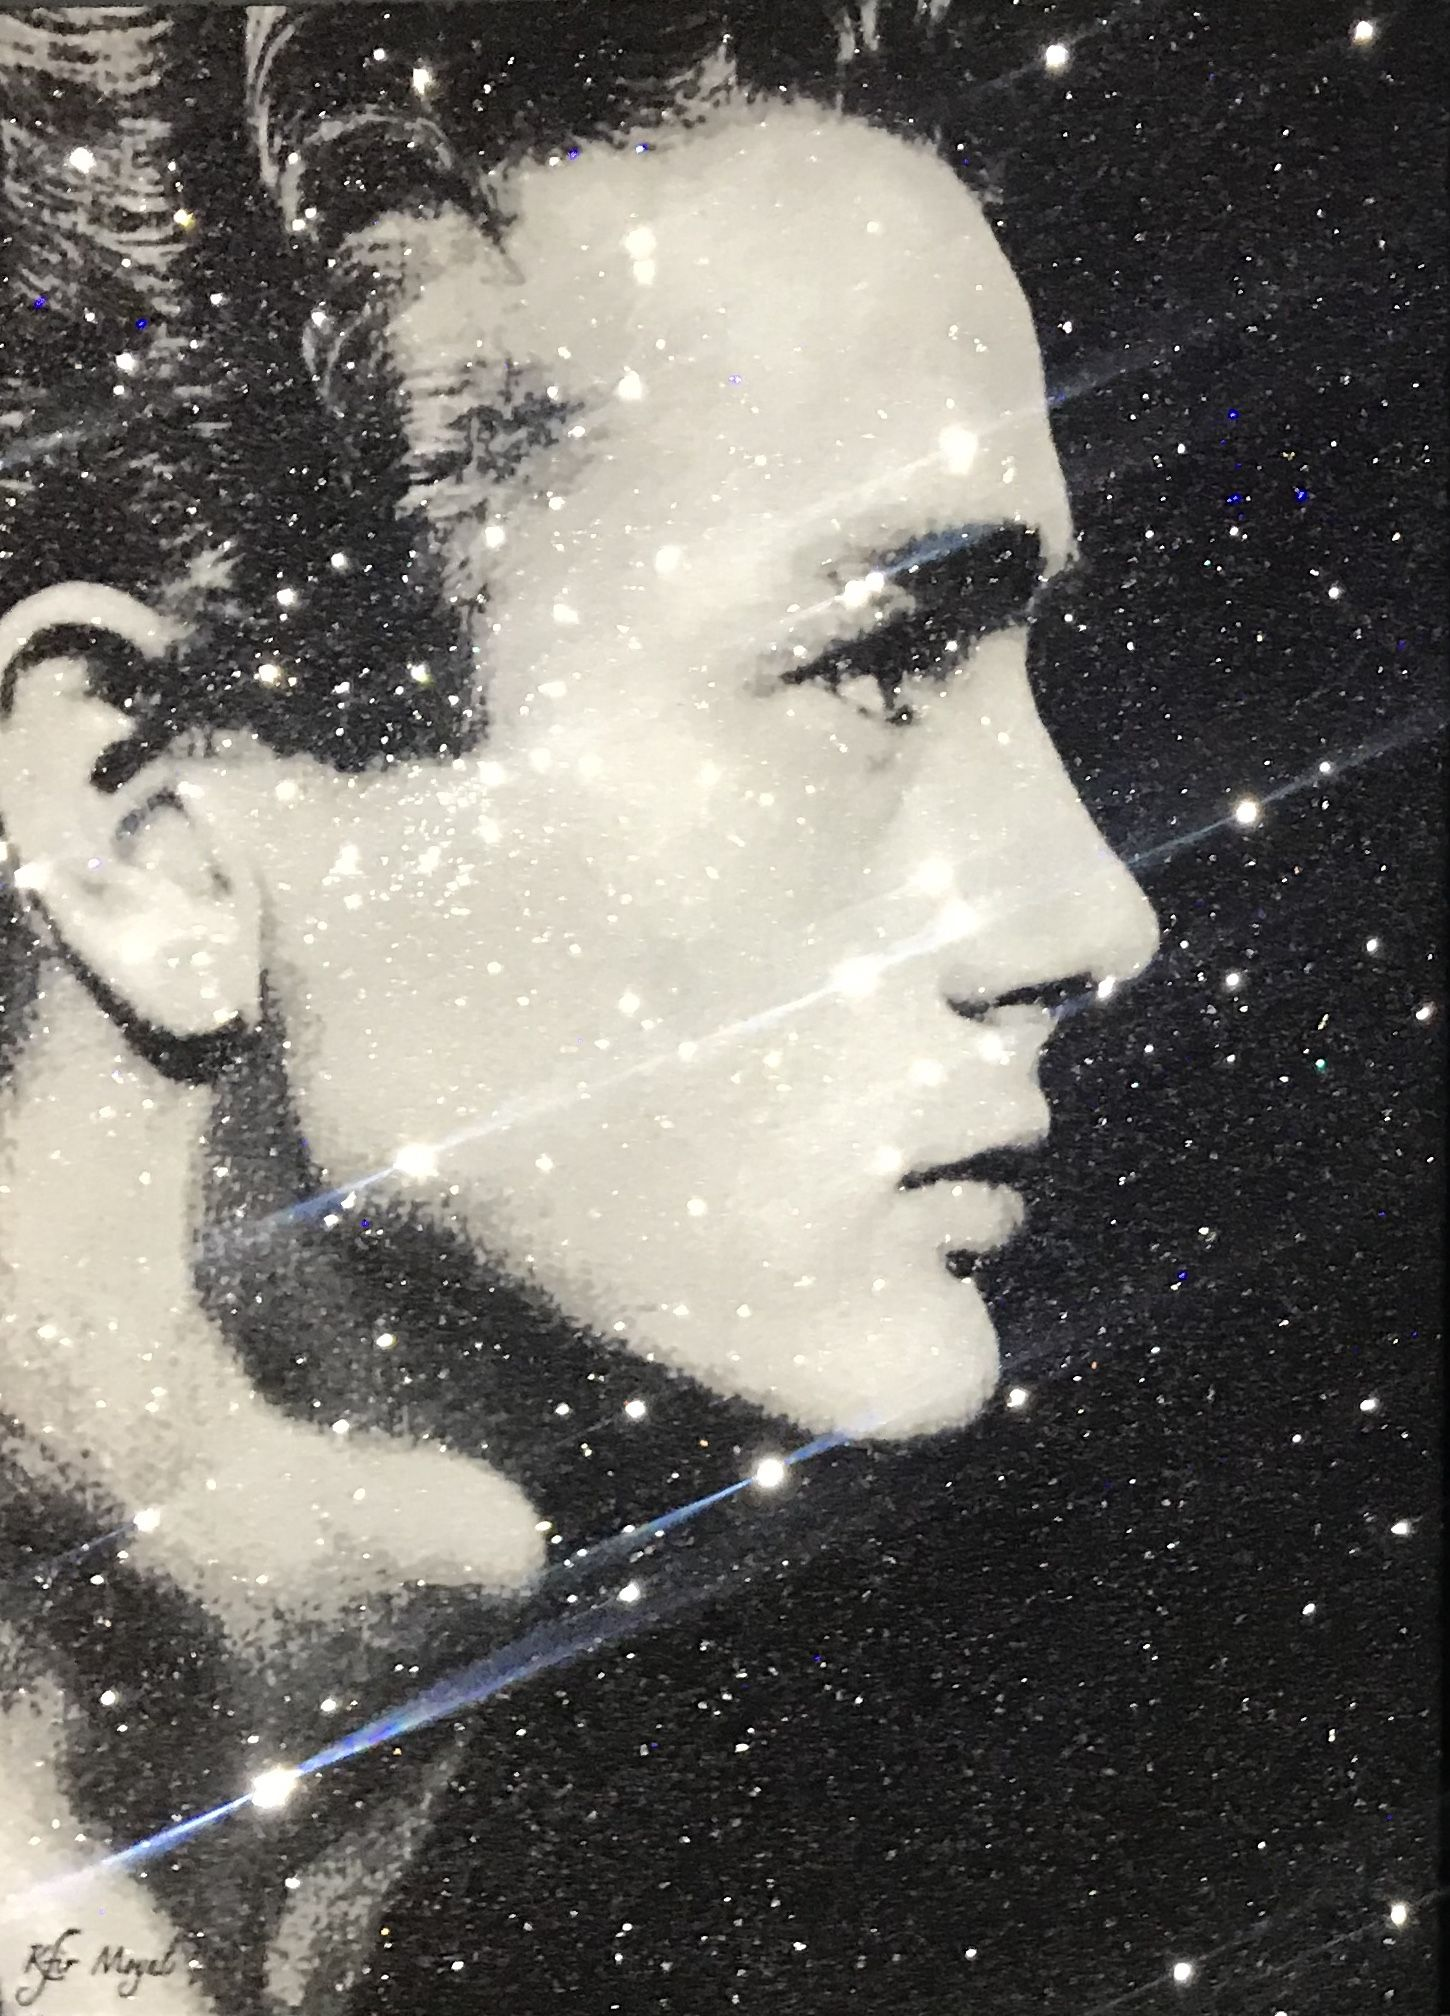 Kfir Moyal - What If... James Dean, 2019; Limited edition mixed media silkscreen on canvas, diamond dust, and hand-embellished Swarovski crystals; Off The Wall Gallery Houston.